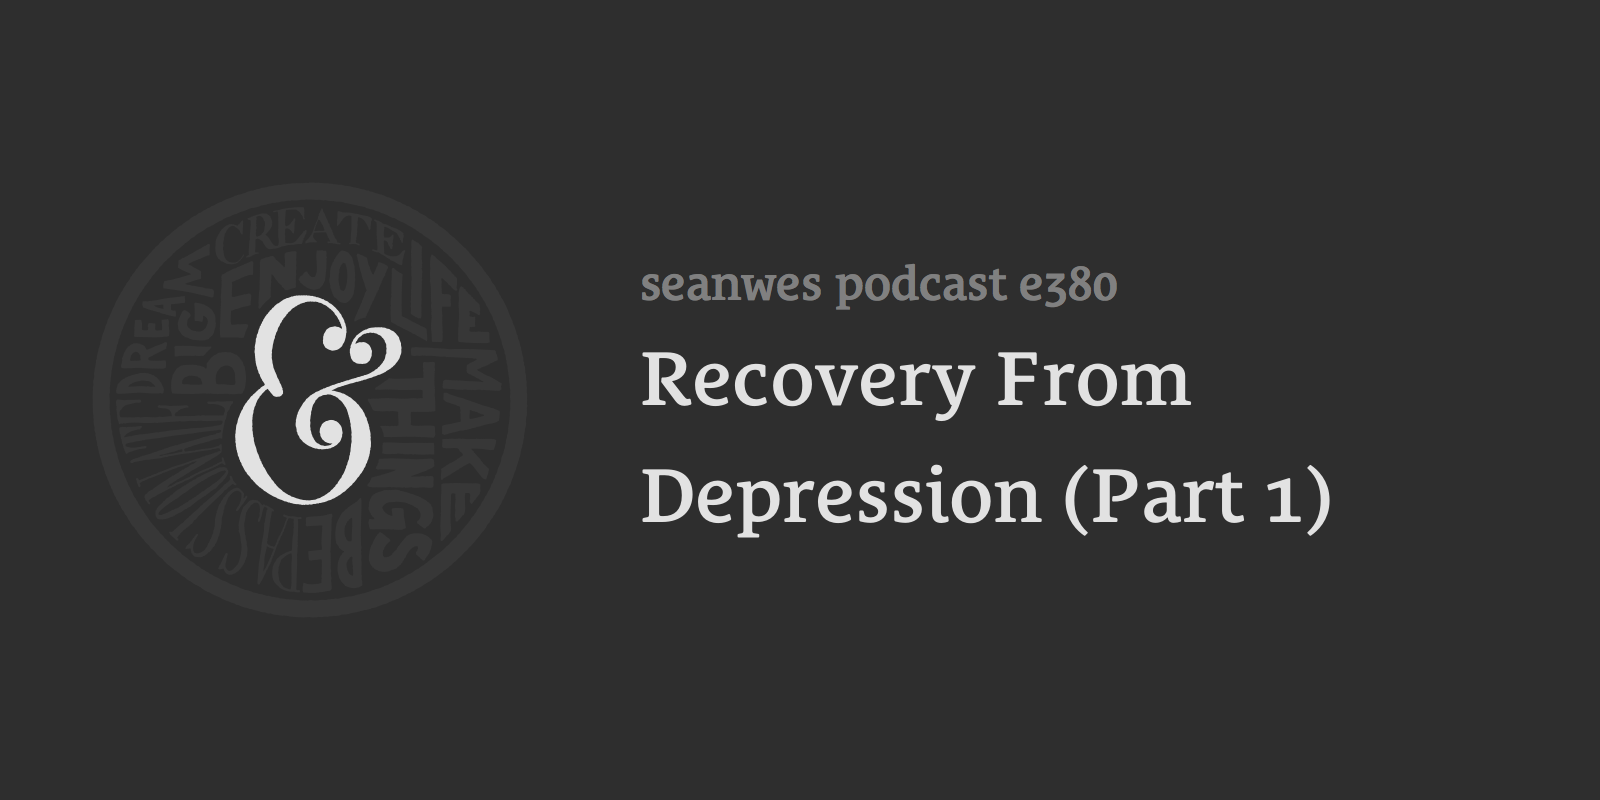 Recovery From Depression (Part 1)